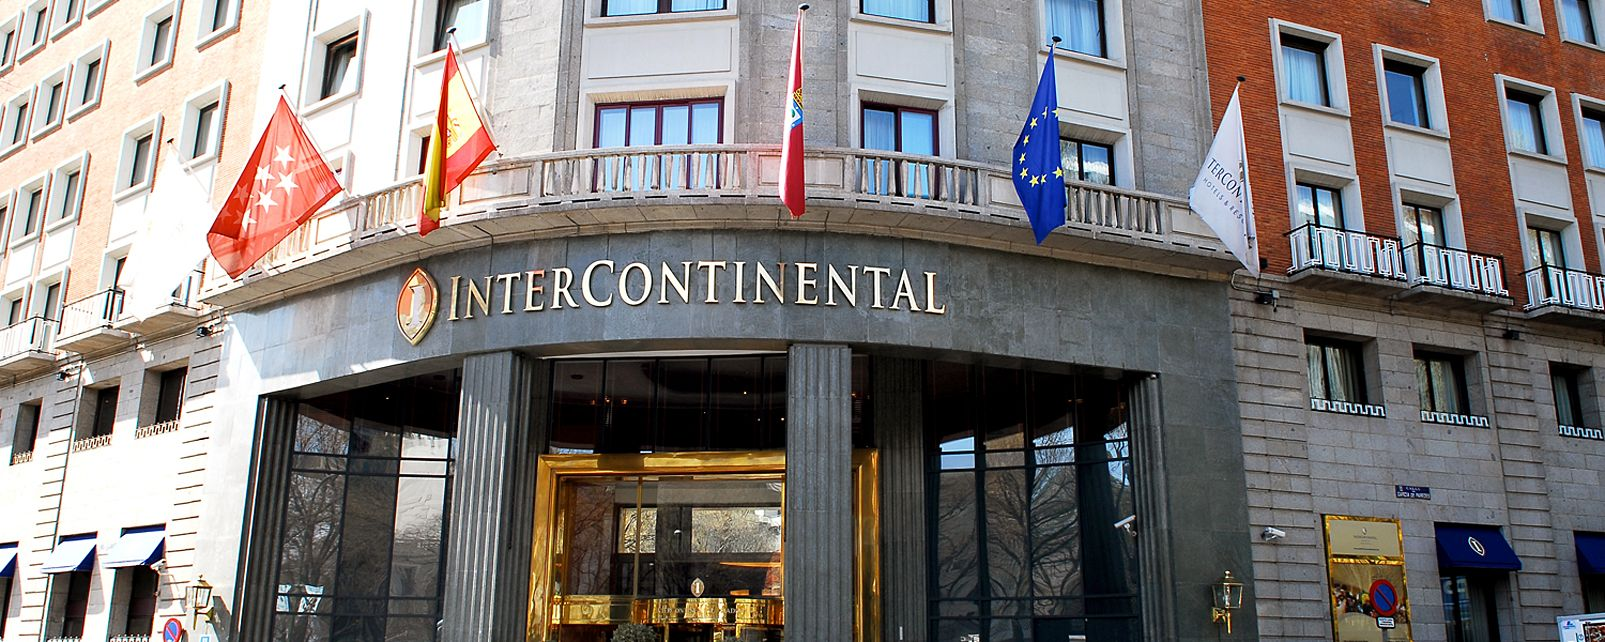 Hotel Castellana Intercontinental Madrid